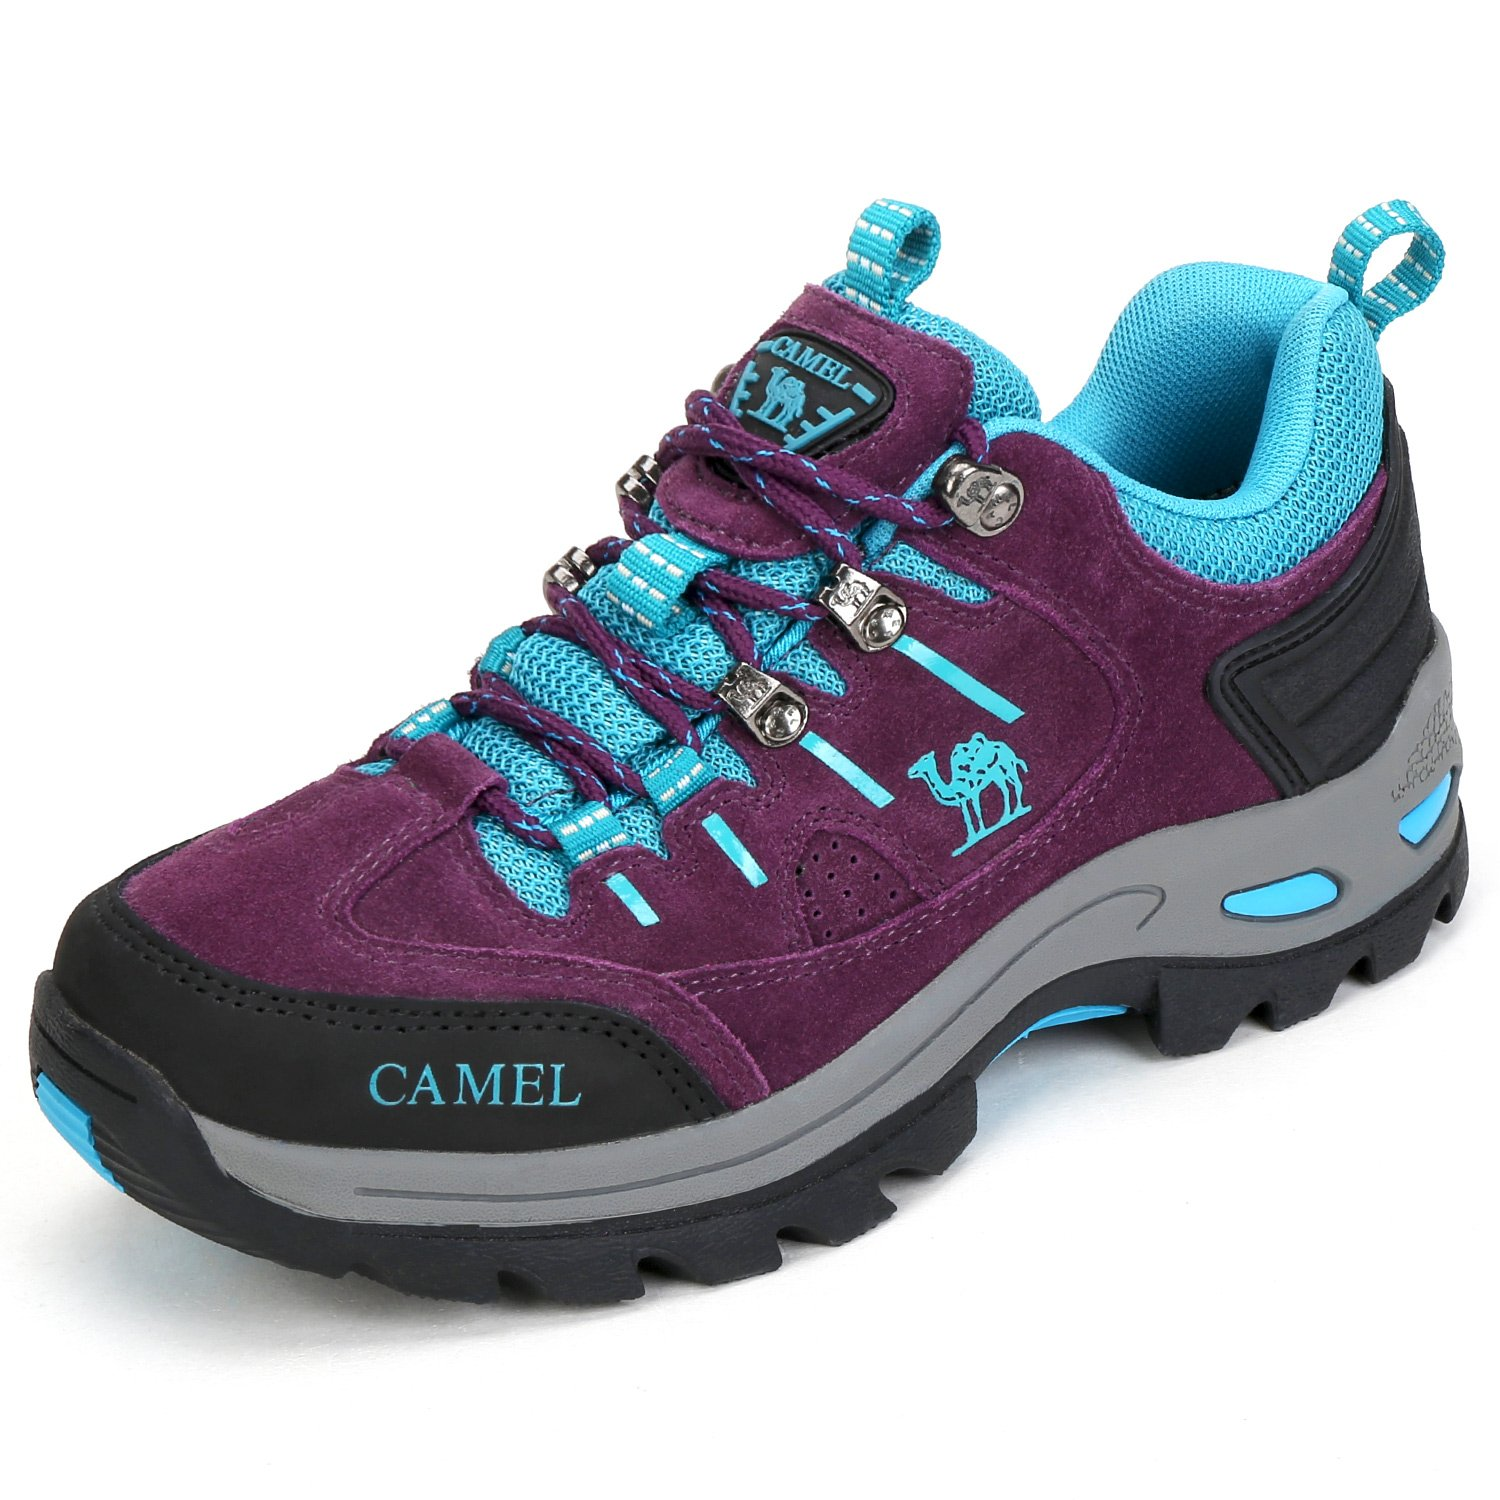 Camel Crown Walking Shoe for Women Hiking Walking,Purple,8 B(M) US